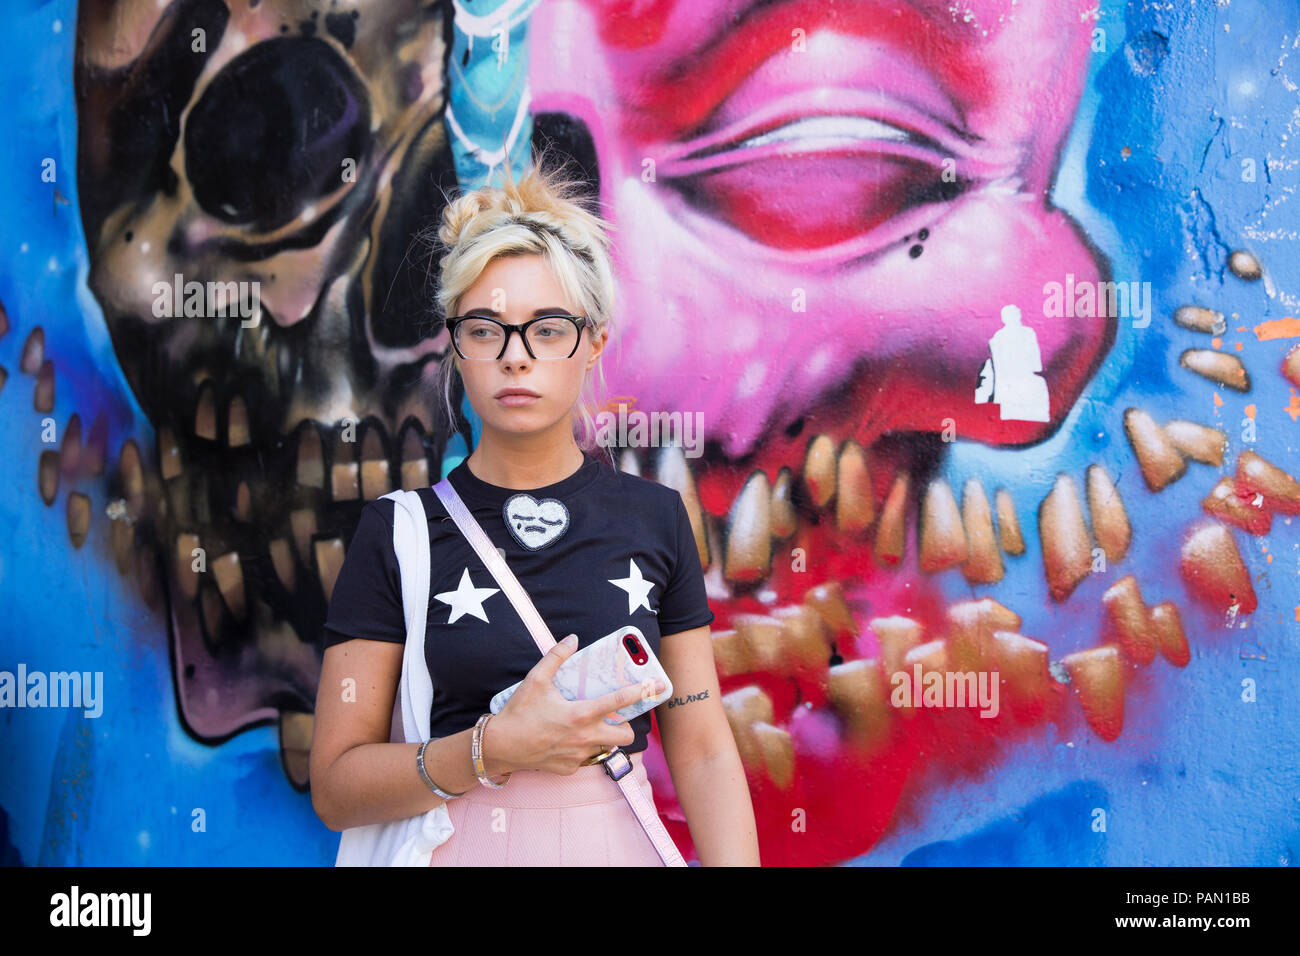 Cool Blond Hip, girl wearing a pink skirt and black short sleeved t-shirt in front of a large graffiti wall on Brick lane in Shoreditch, London, UK. - Stock Image